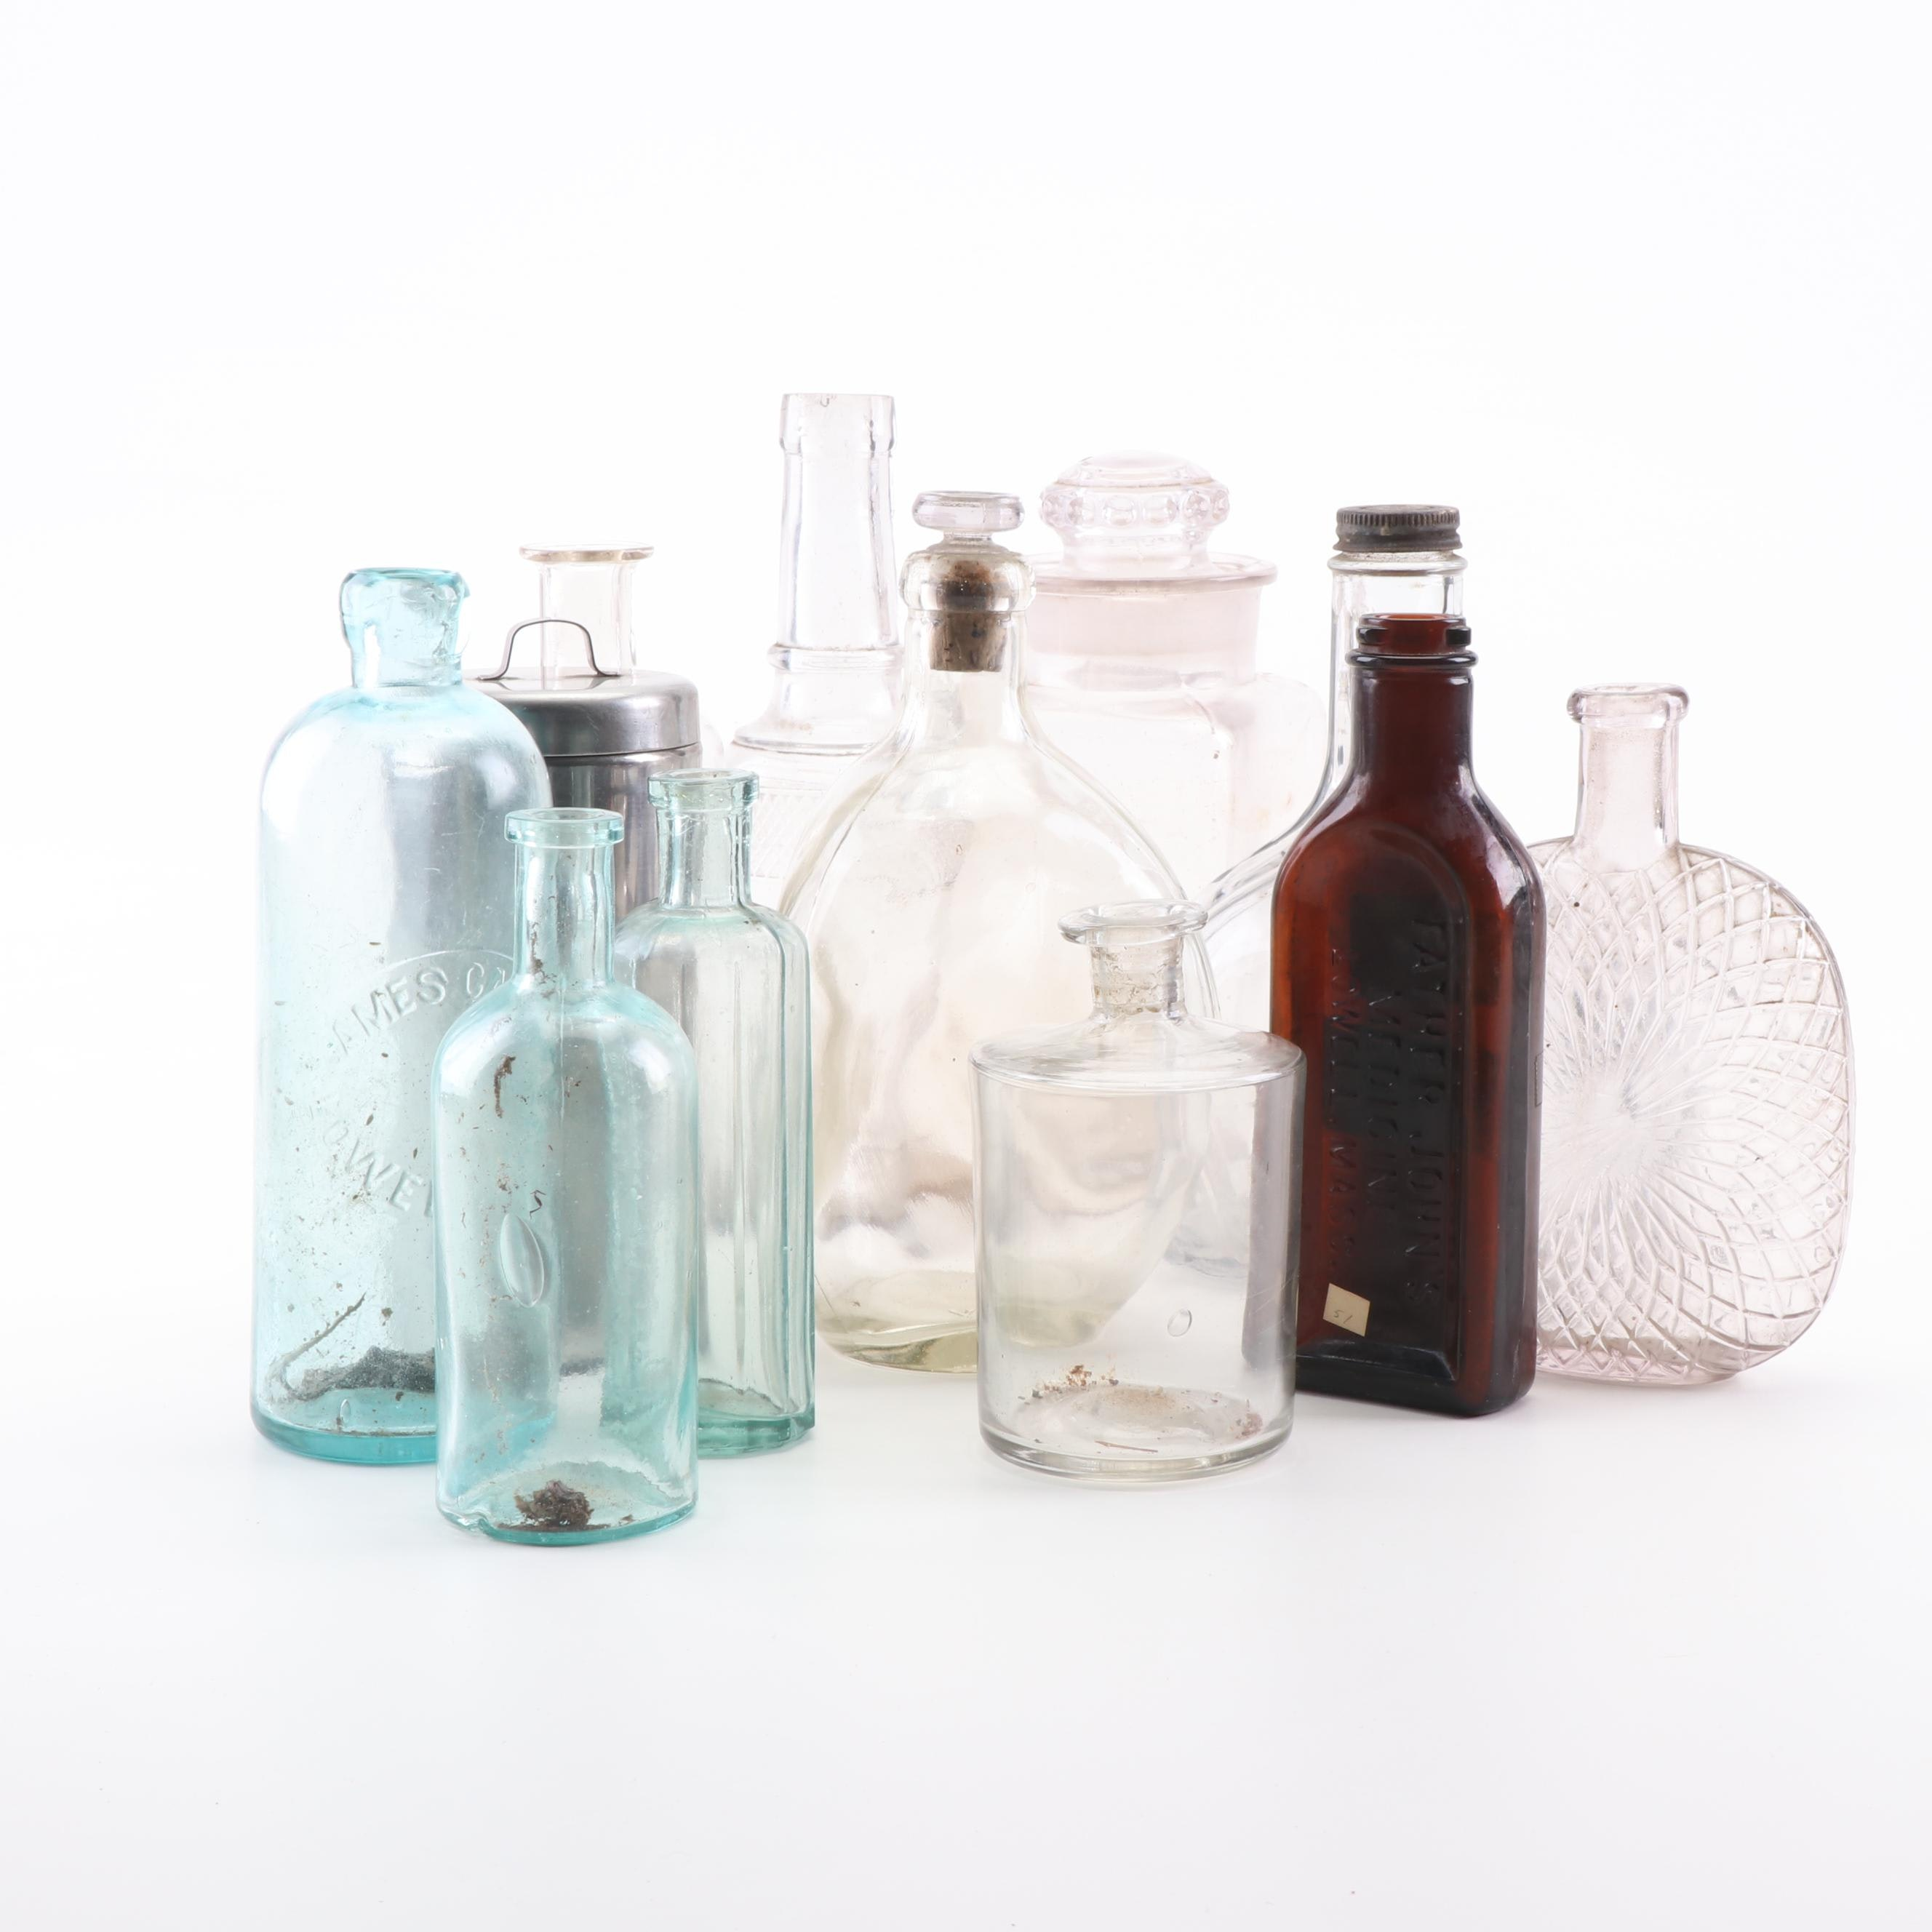 Vintage Glass Bottles, including Dr. S.A. Tuttle, Father John's and Others